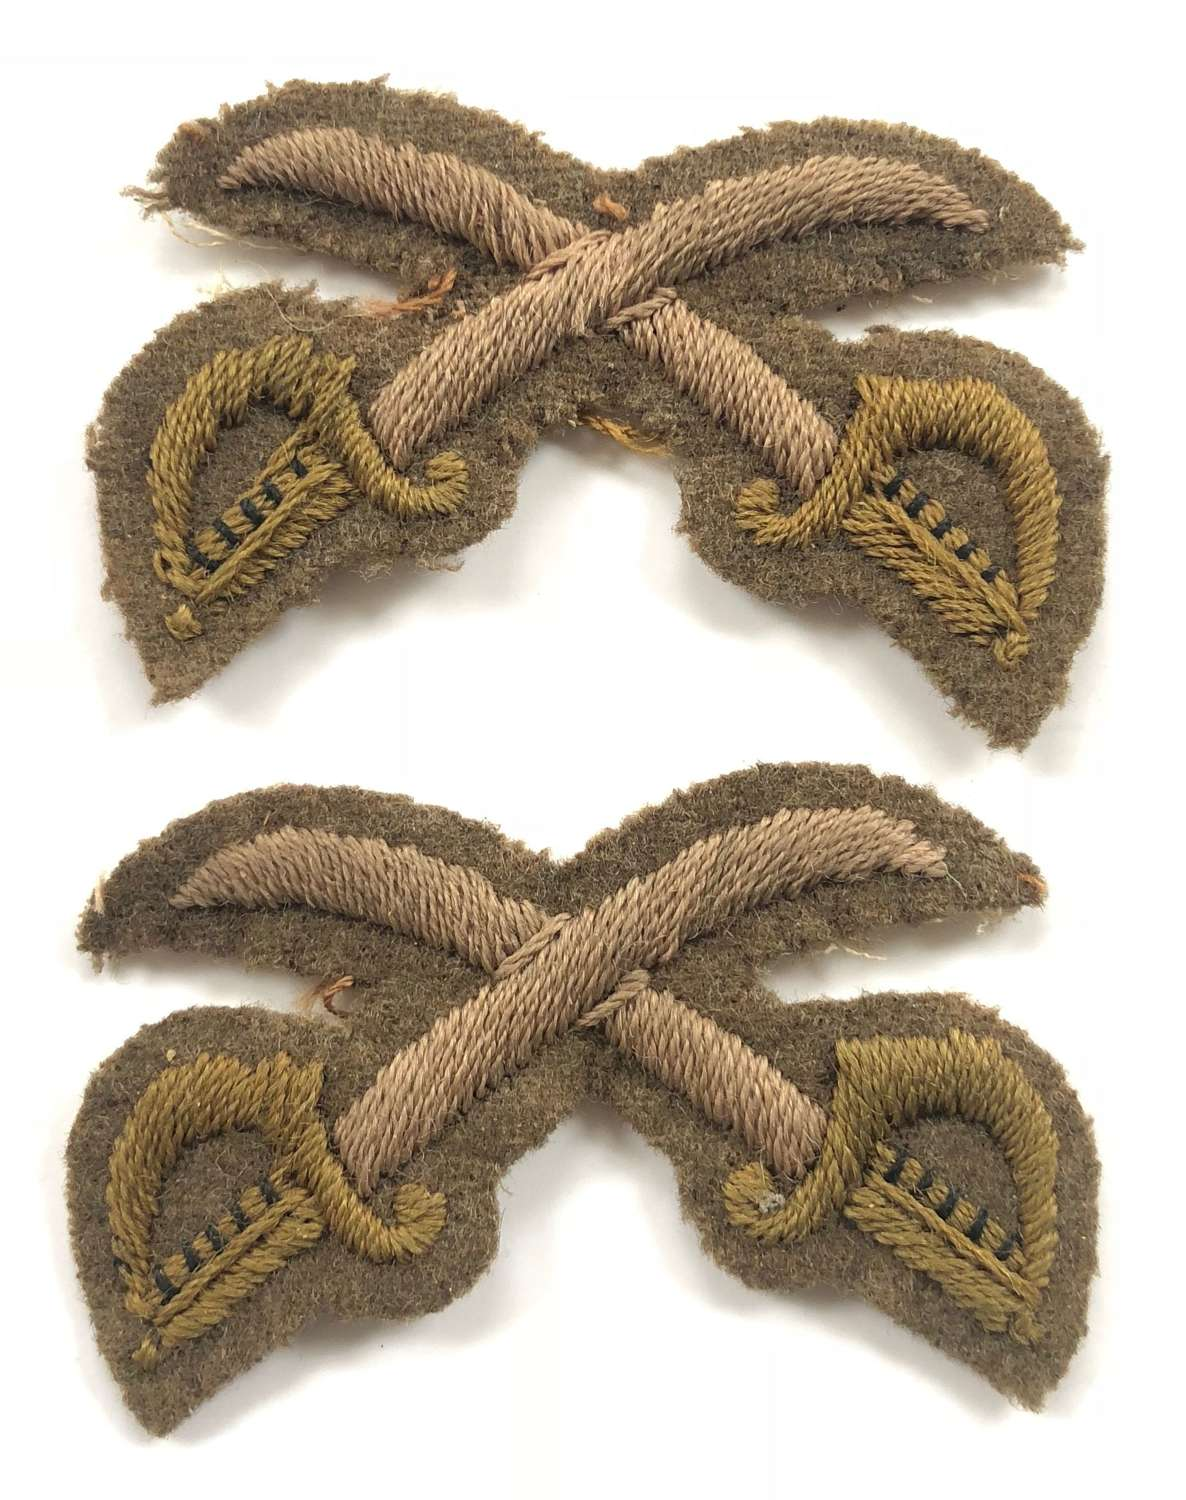 WW1 Period Army Physical Training Instructors Crossed Swords Badges.